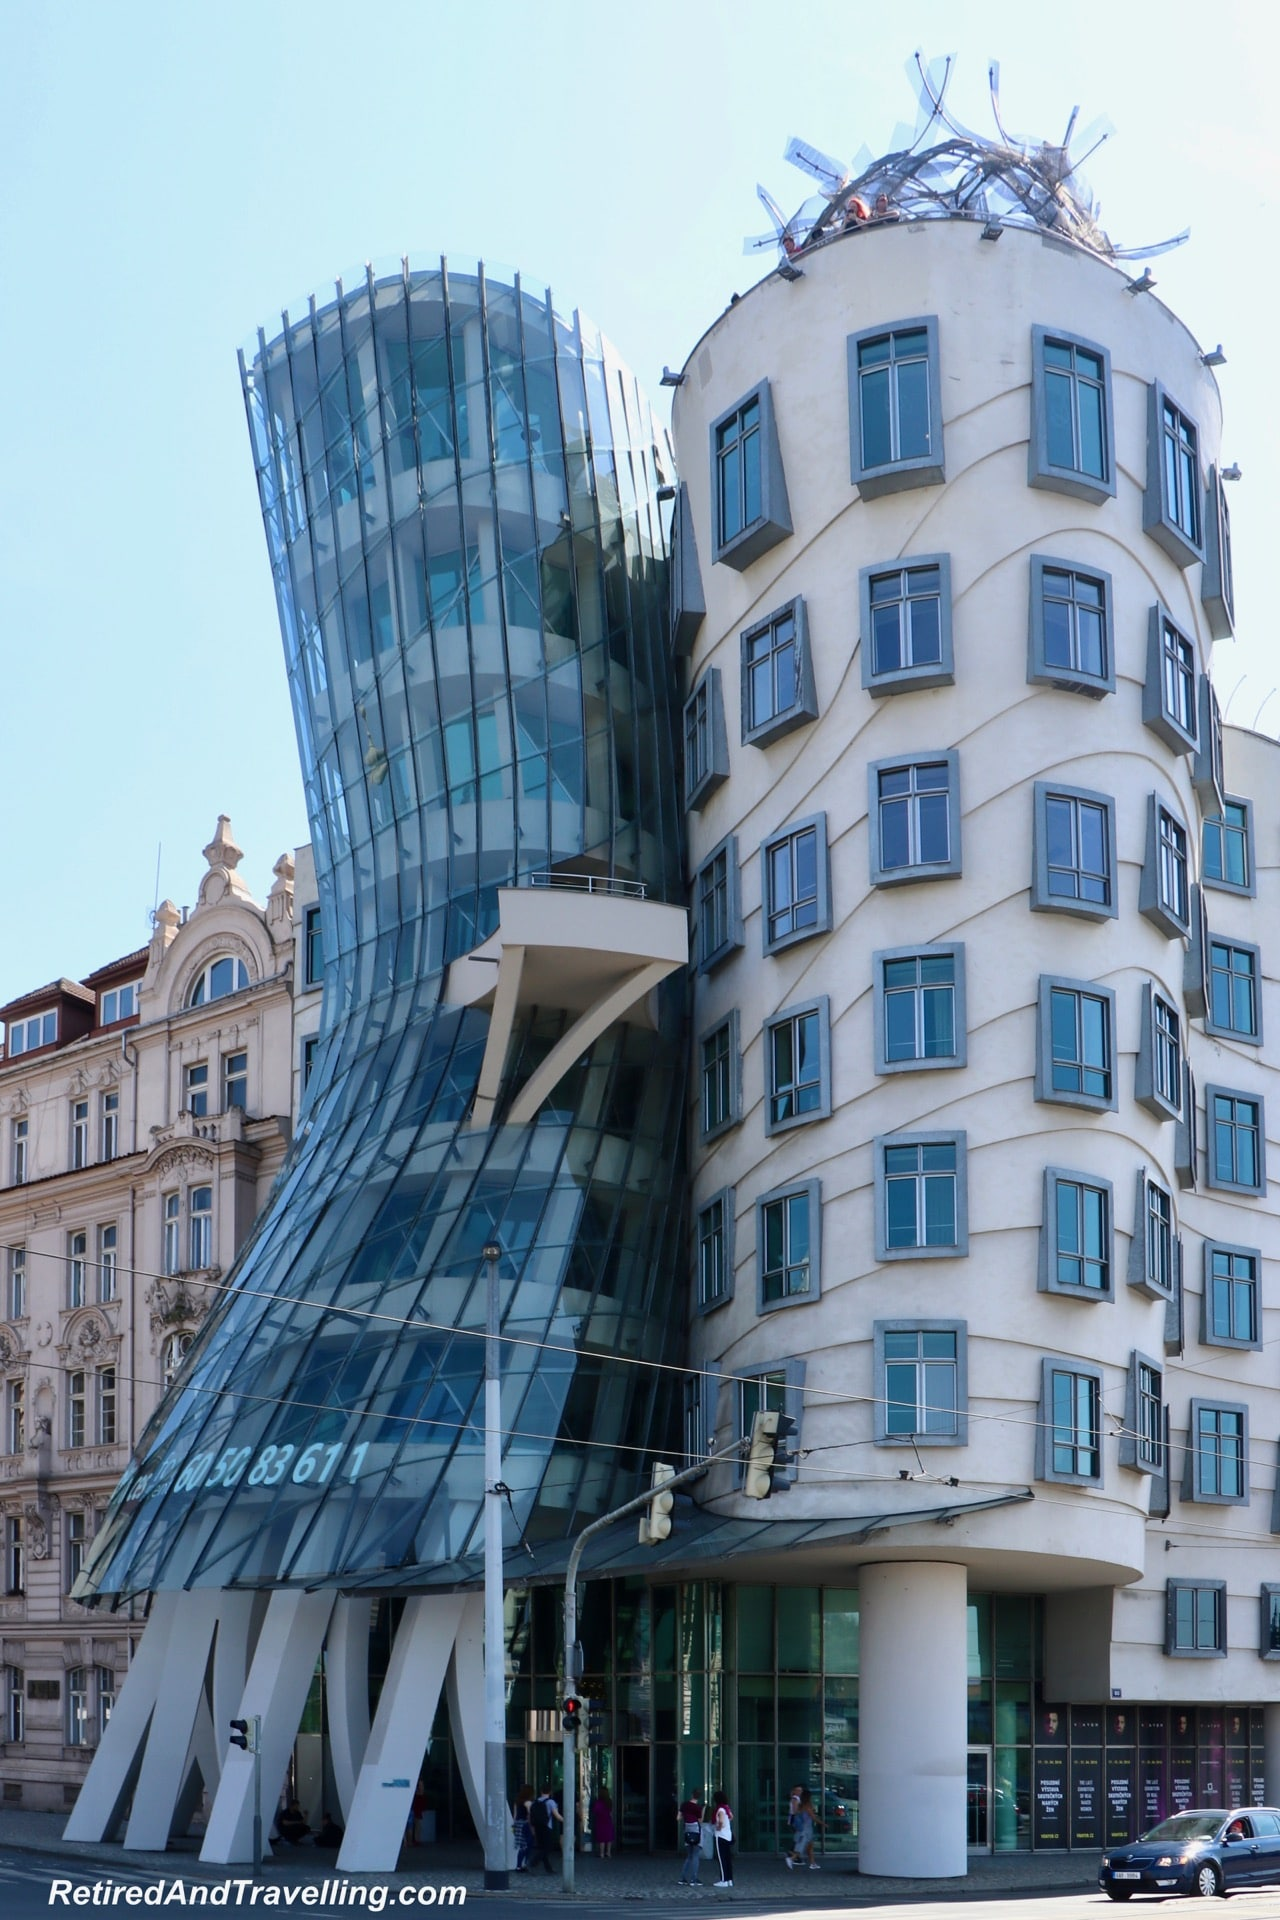 Dancing House Riverfront Walk Views - Cruise the Vltava River in Prague.jpg